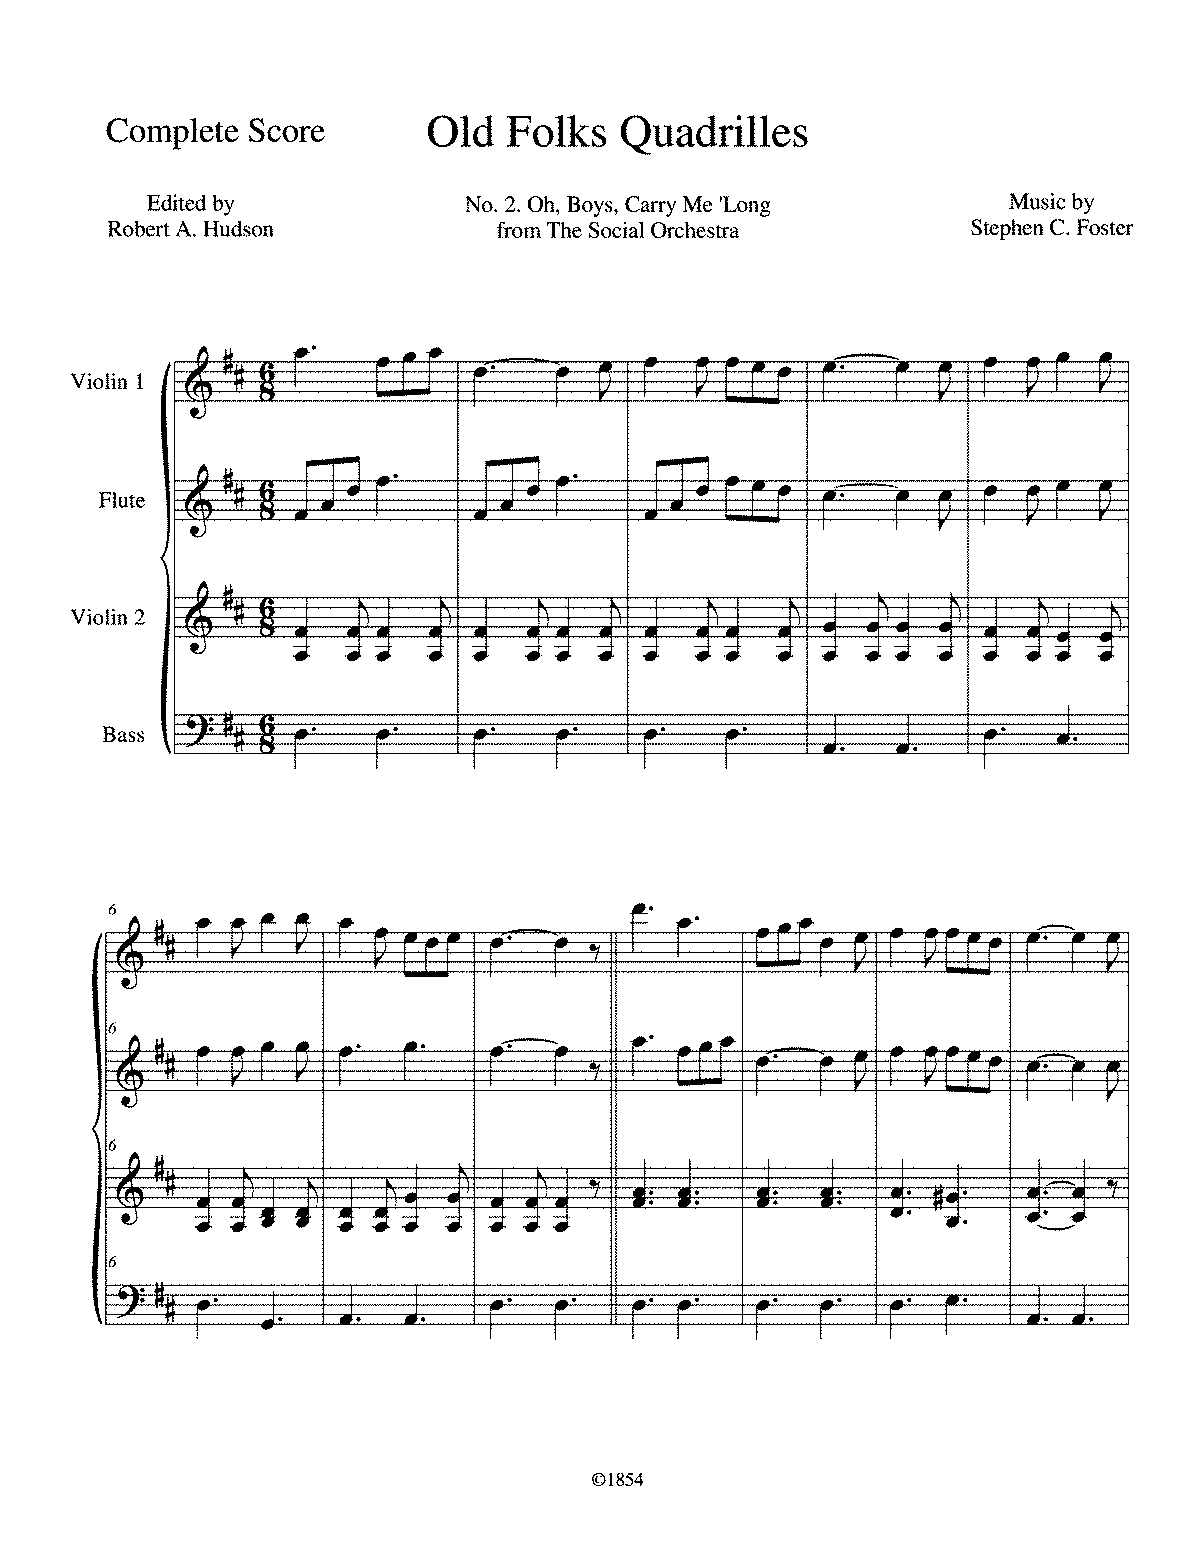 PMLP396869-No 2 Oh Boys Carry Me Long - Complete Score.pdf